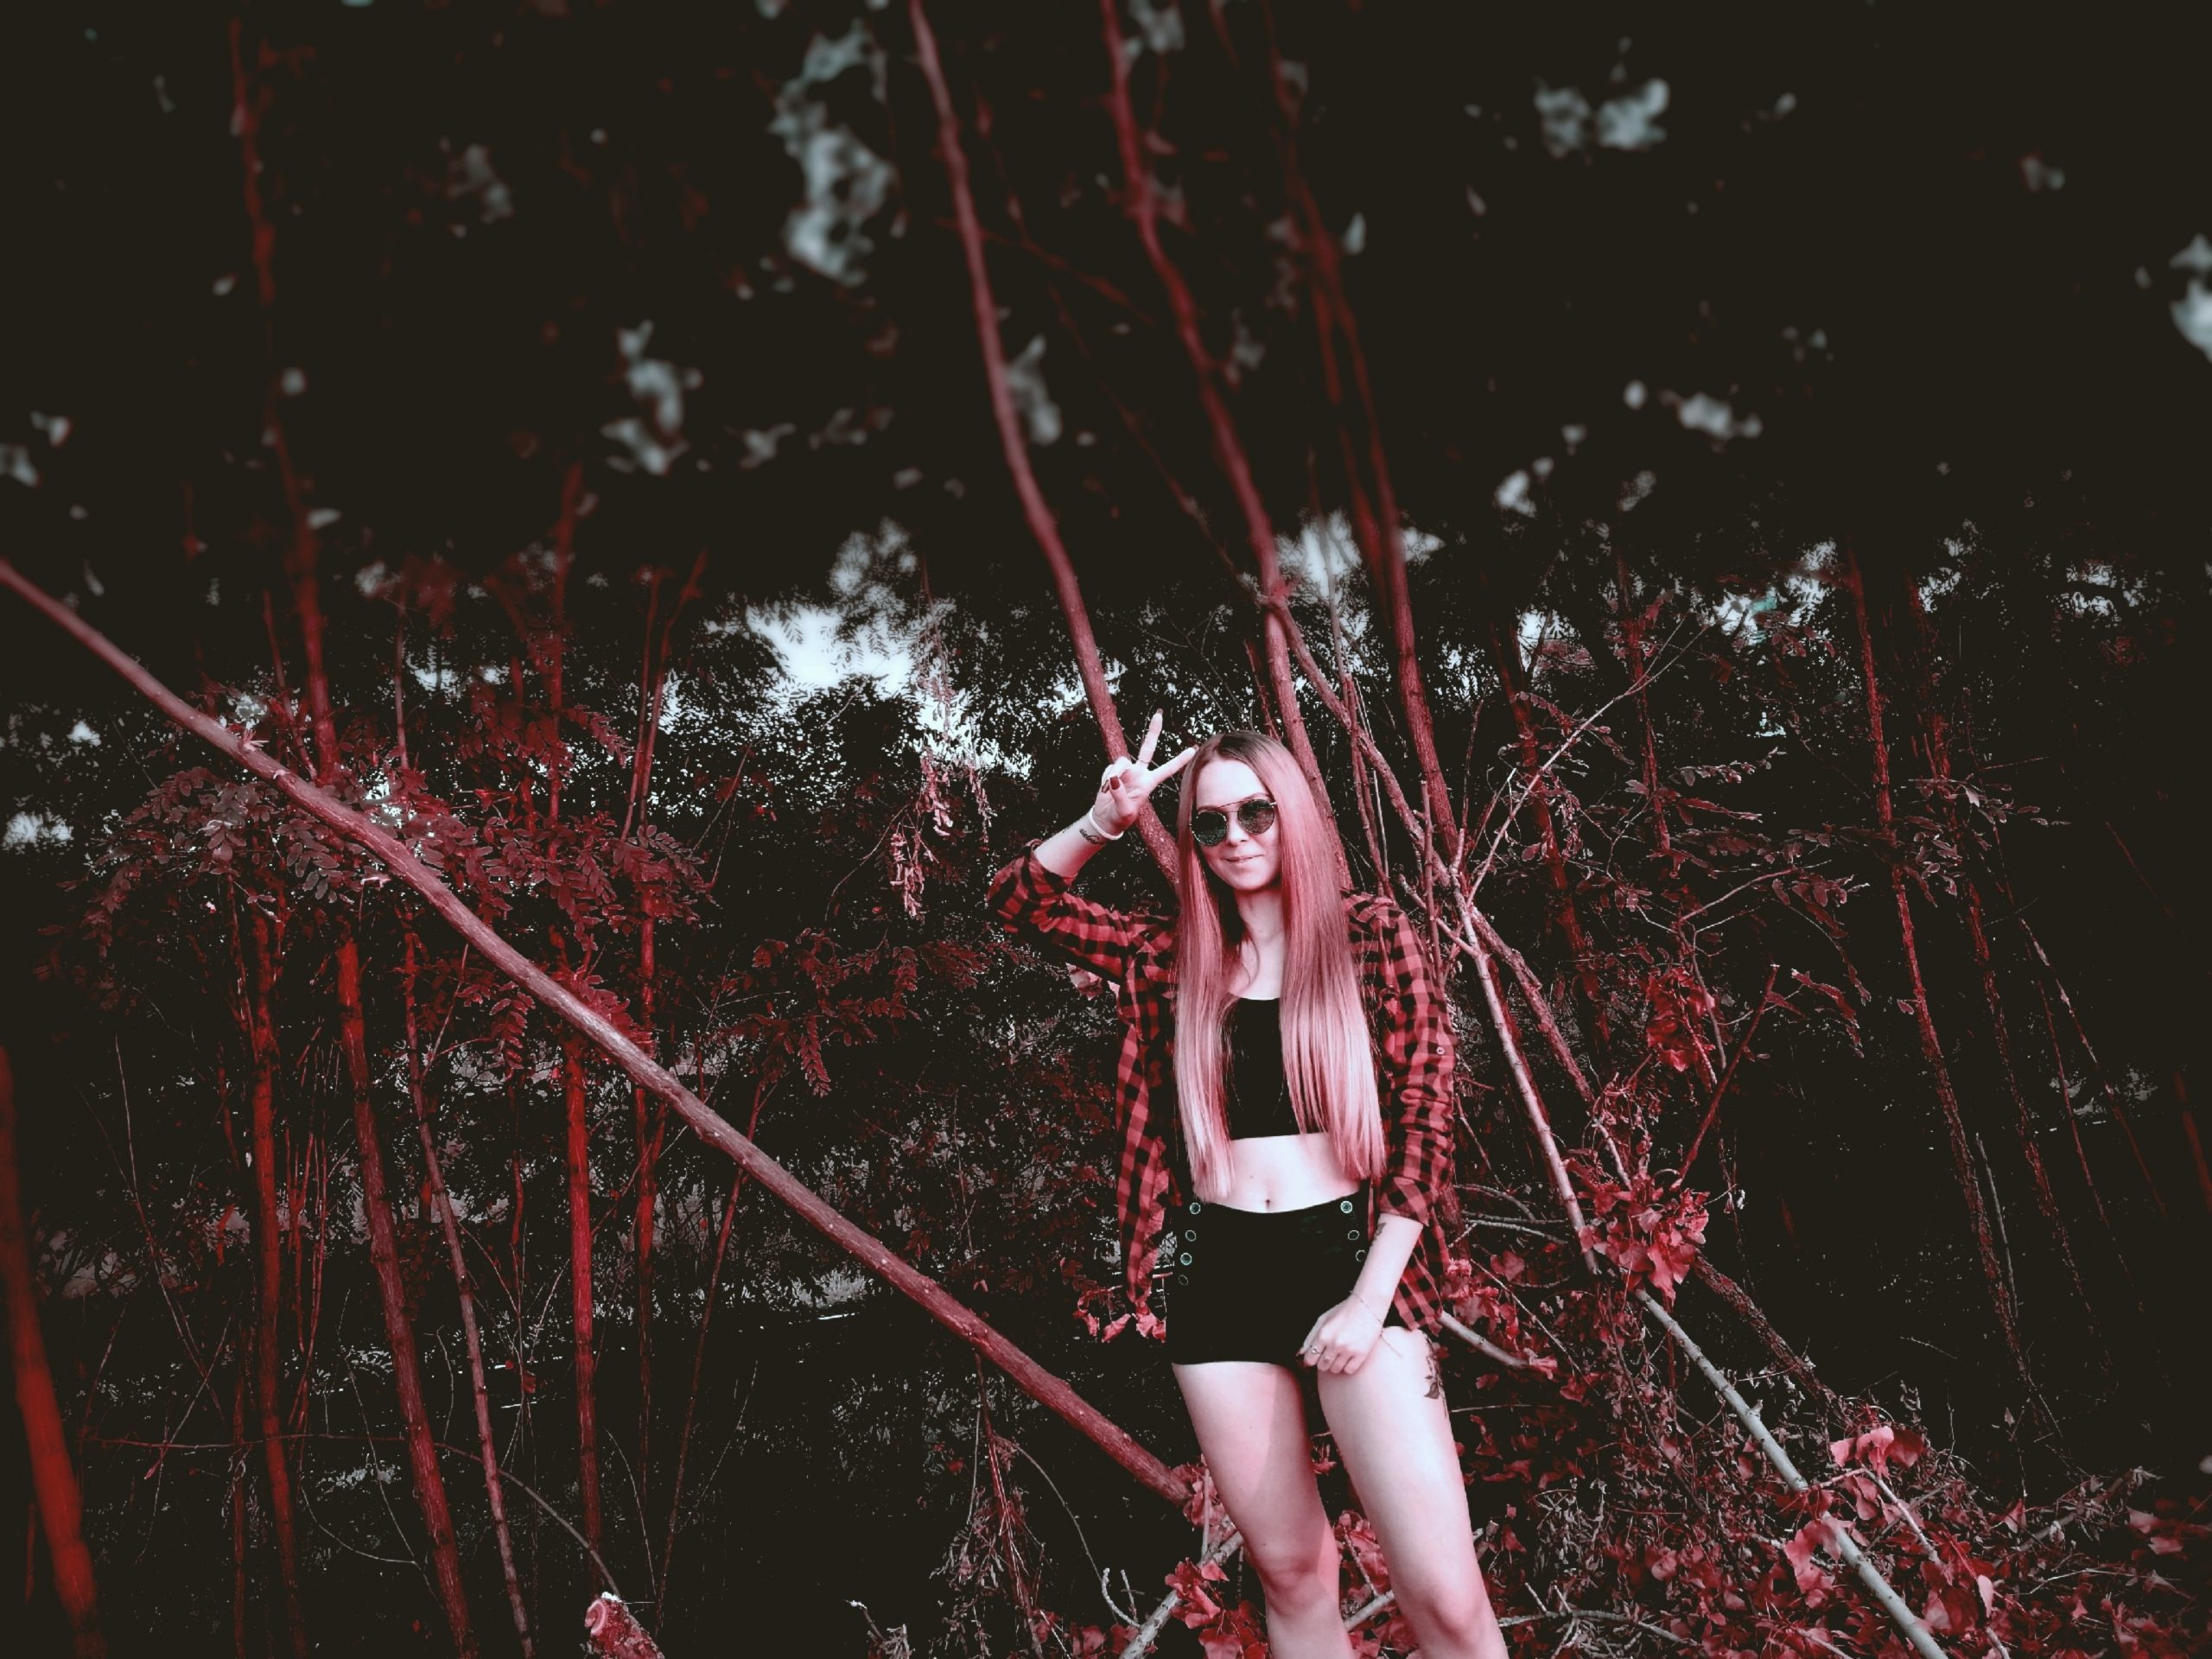 woman in black and white striped tank top and black shorts standing on forest